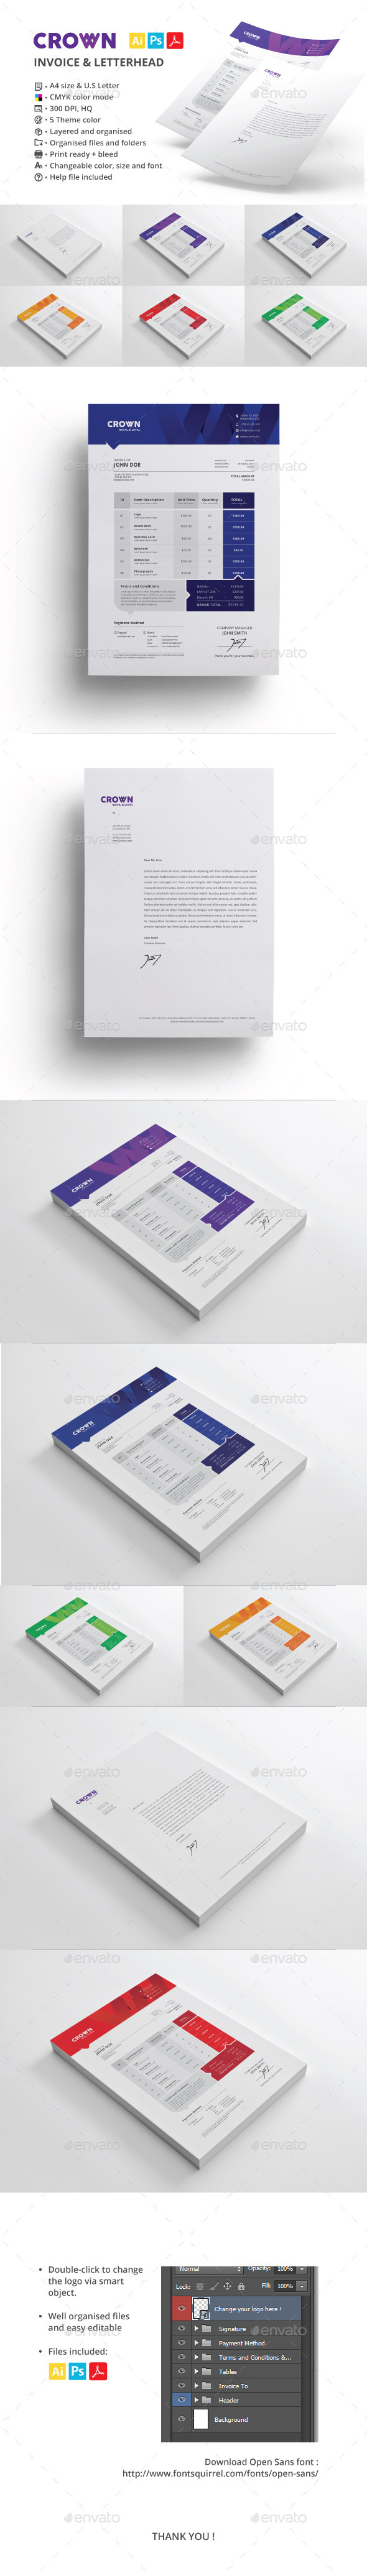 Crown Invoice & Letterhead - Proposals & Invoices Stationery